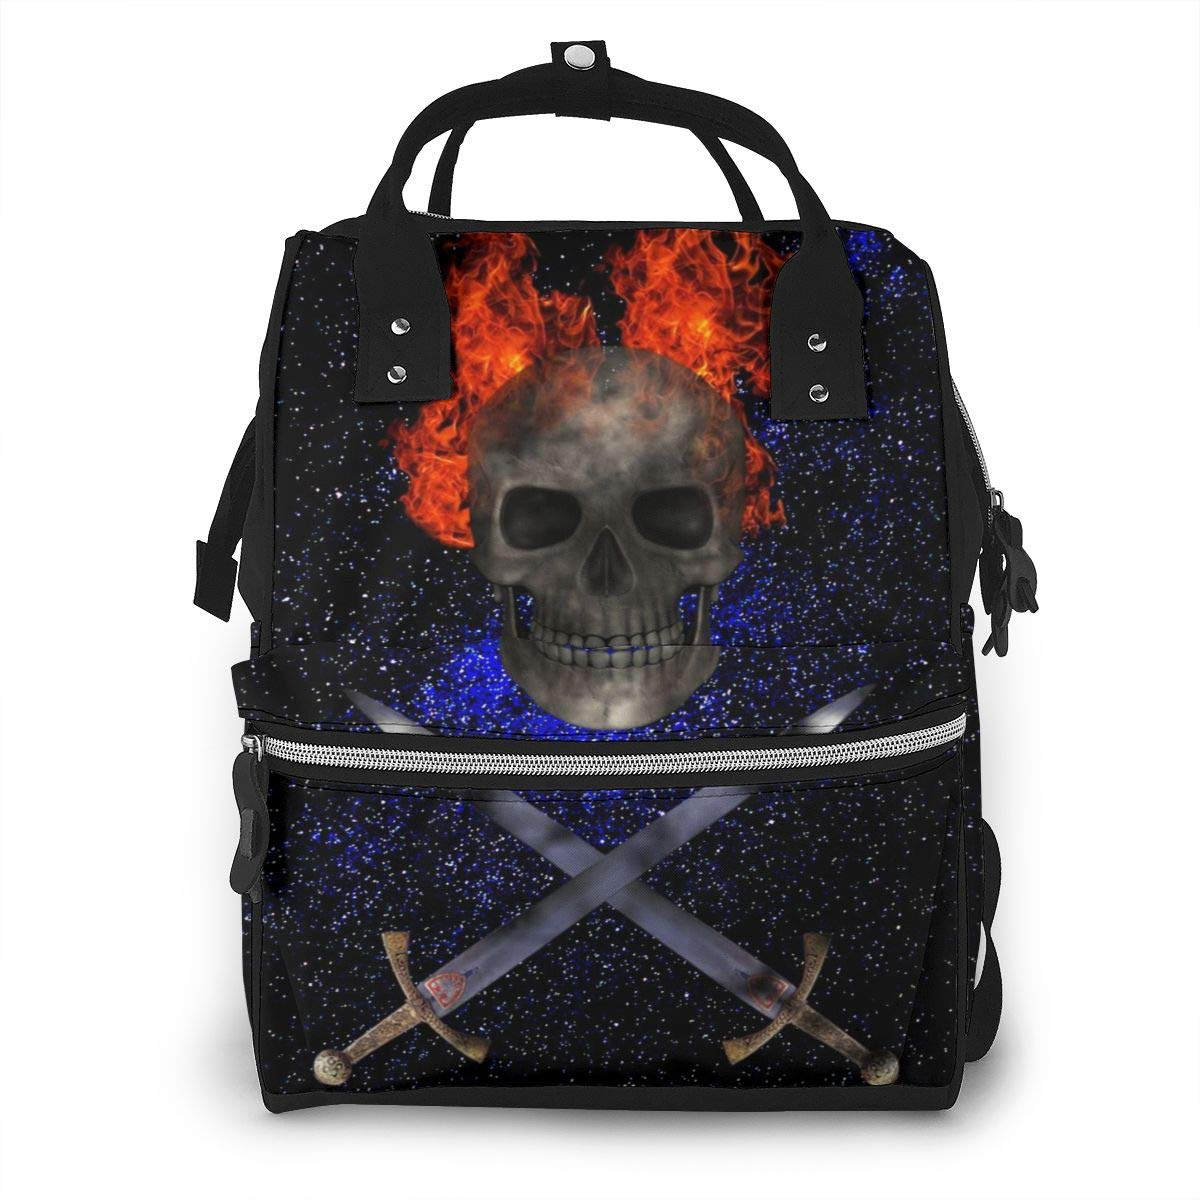 Galaxy Pirate Skull Flame Night Large Capacity Diaper Nappy Travel Nursing Bag Mummy Mom Backpack Laptop Multi-Function for Baby Care Women Family